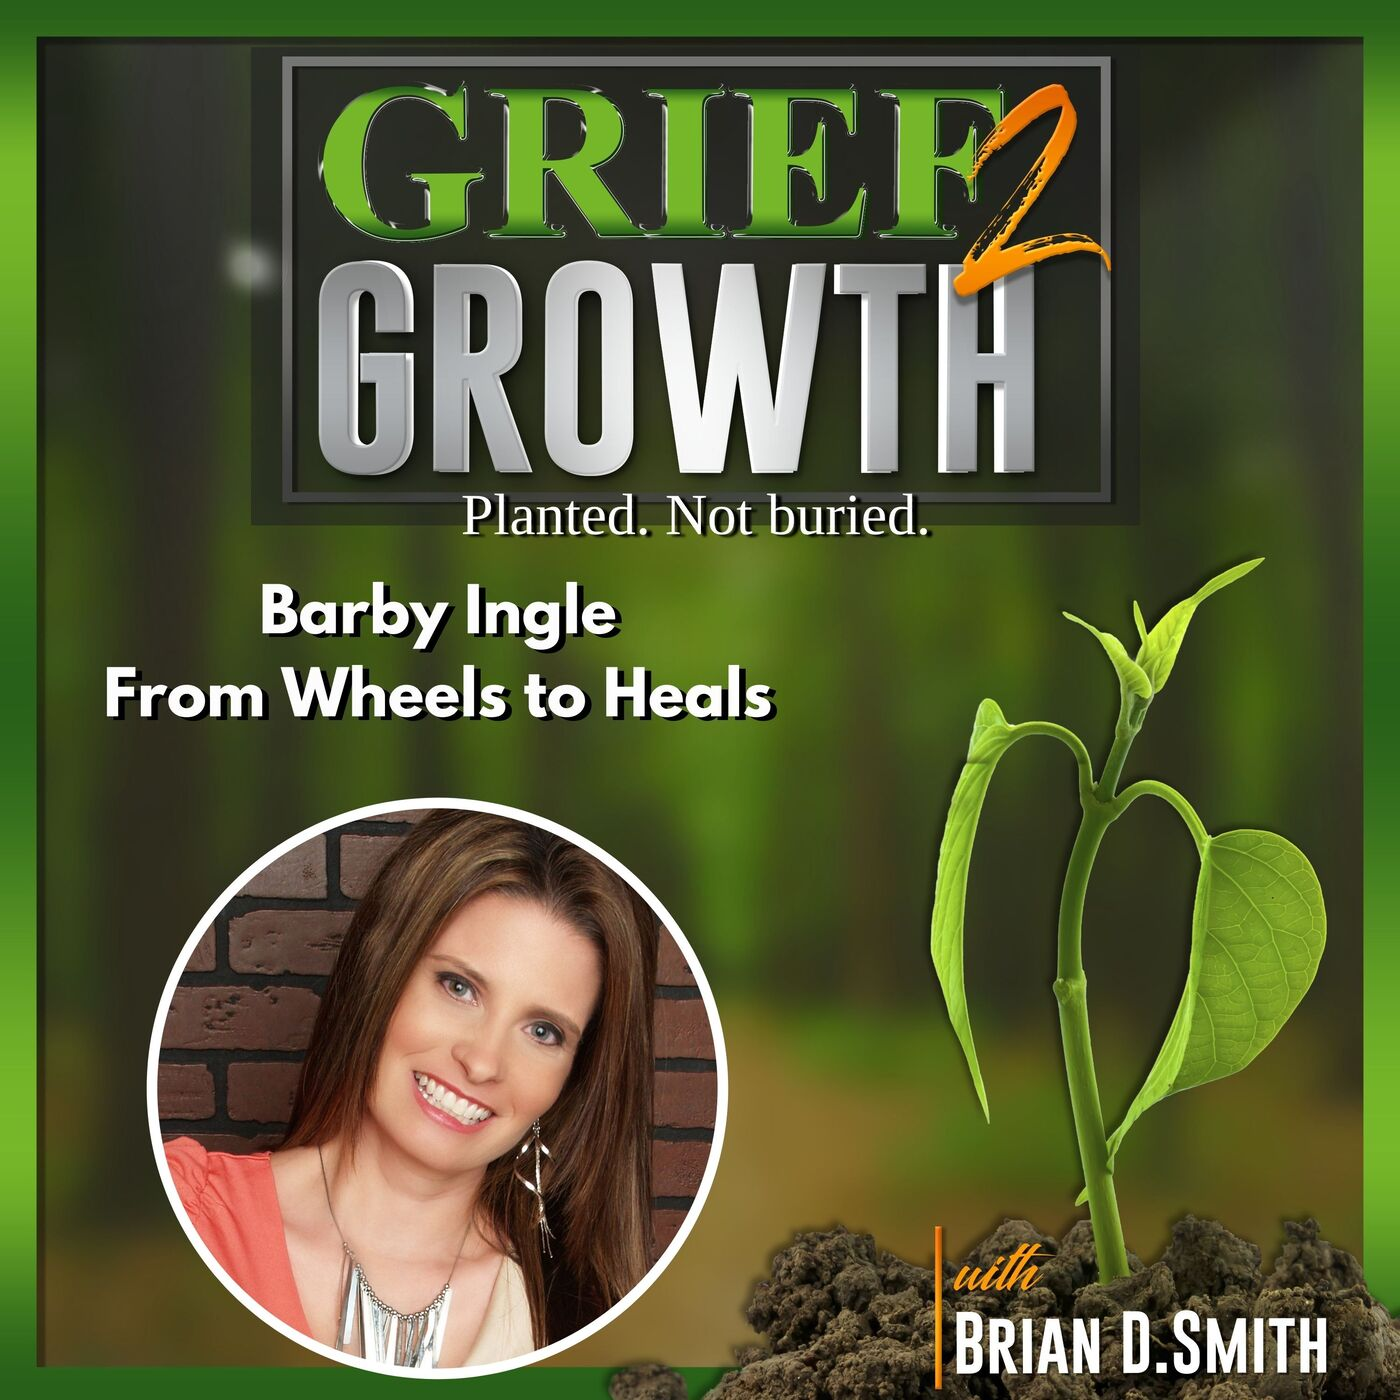 Barby Ingle- From Wheels to Heals